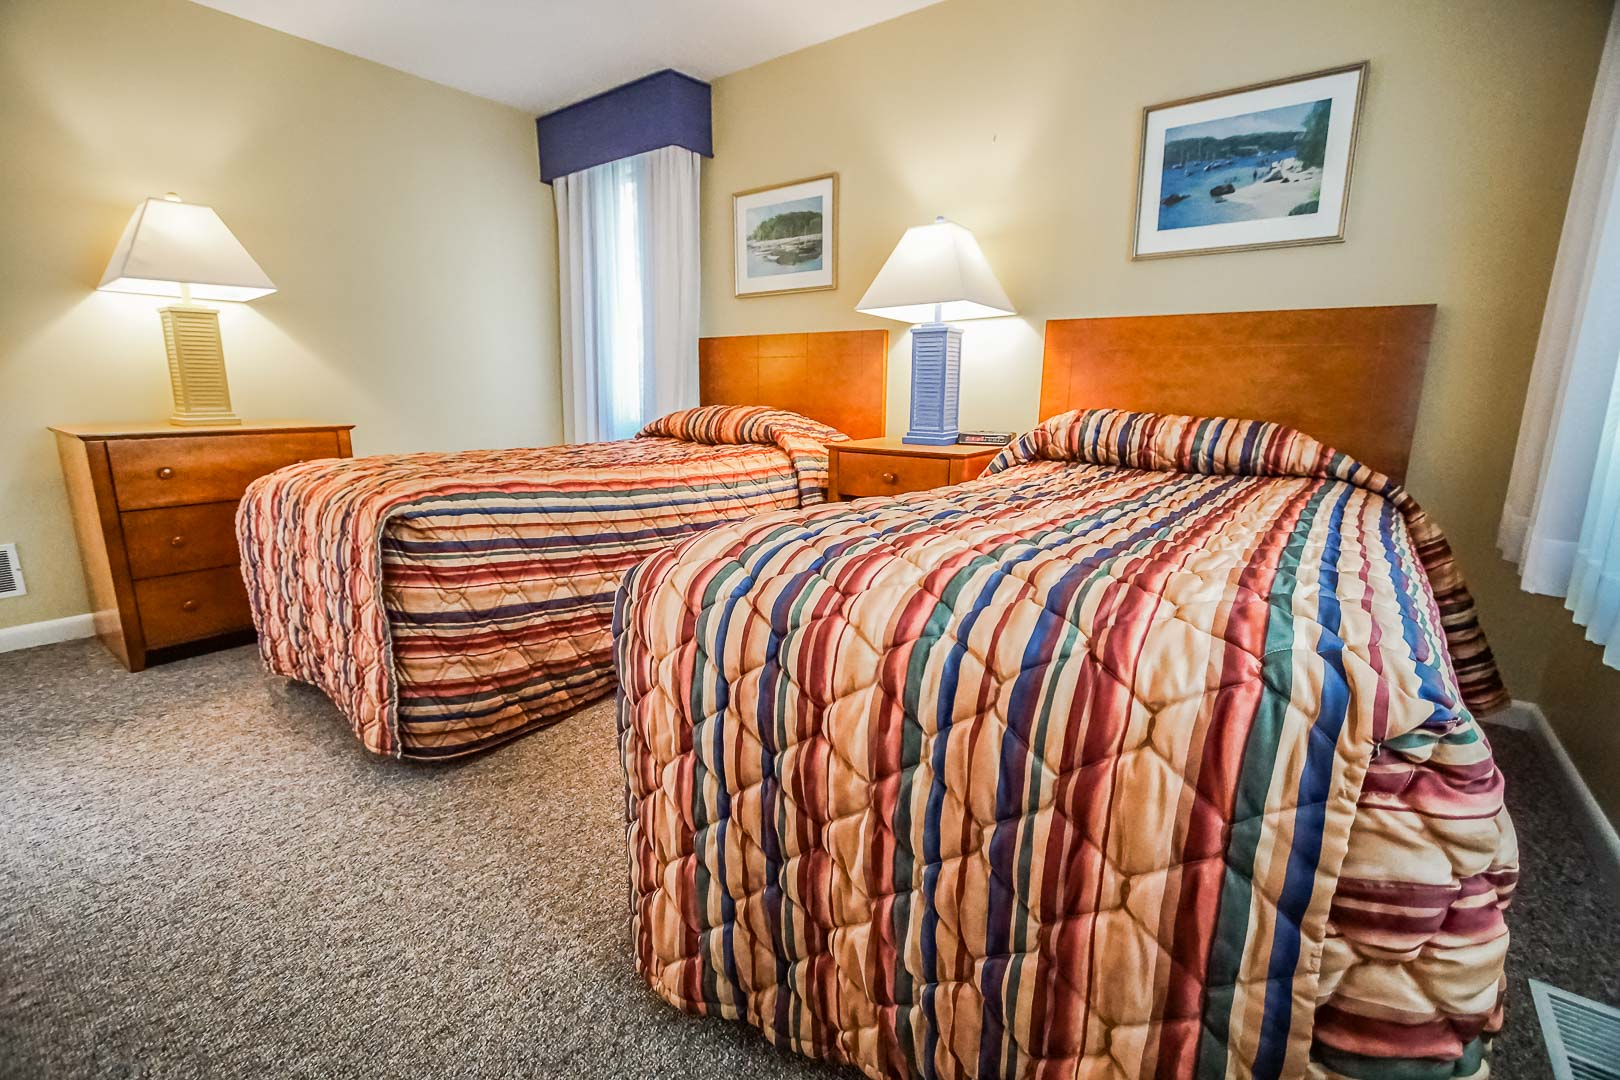 A two bedroom unit with double beds available at VRI's Cape Cod Holiday Estates in Massachusetts.